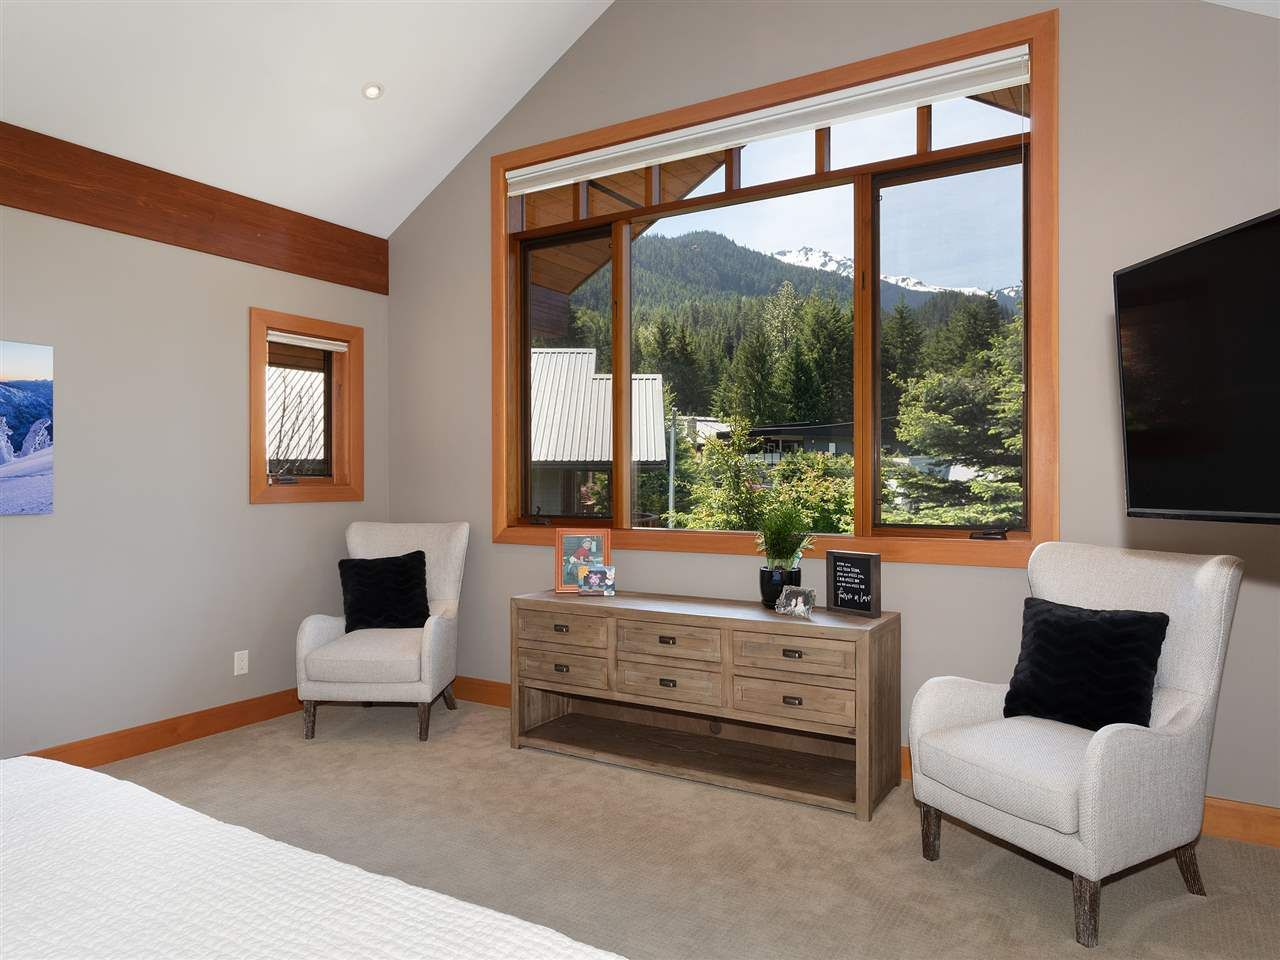 Photo 21: Photos: 3217 ARCHIBALD WAY in Whistler: Alta Vista House for sale : MLS®# R2468991